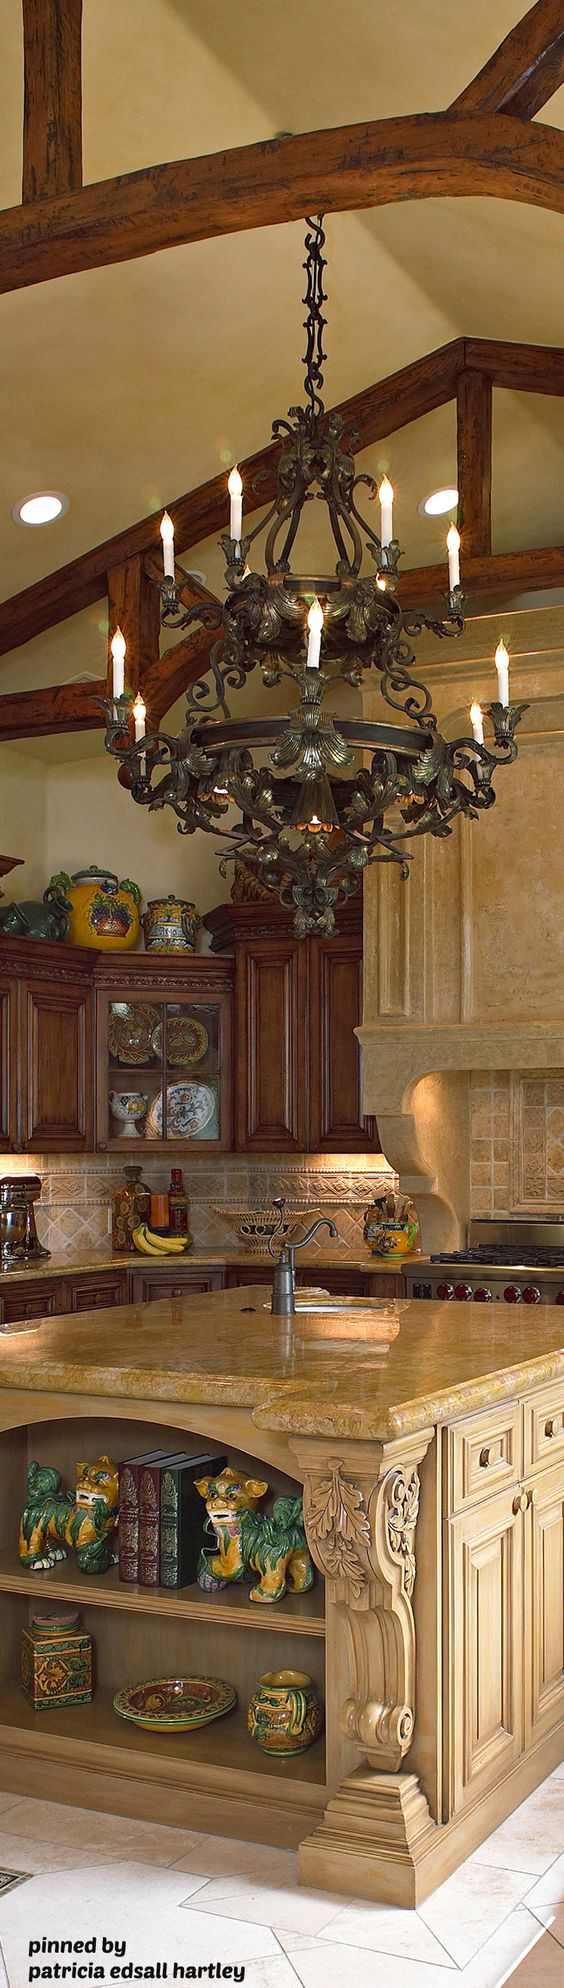 World and decor on pinterest Old world tuscan kitchen designs